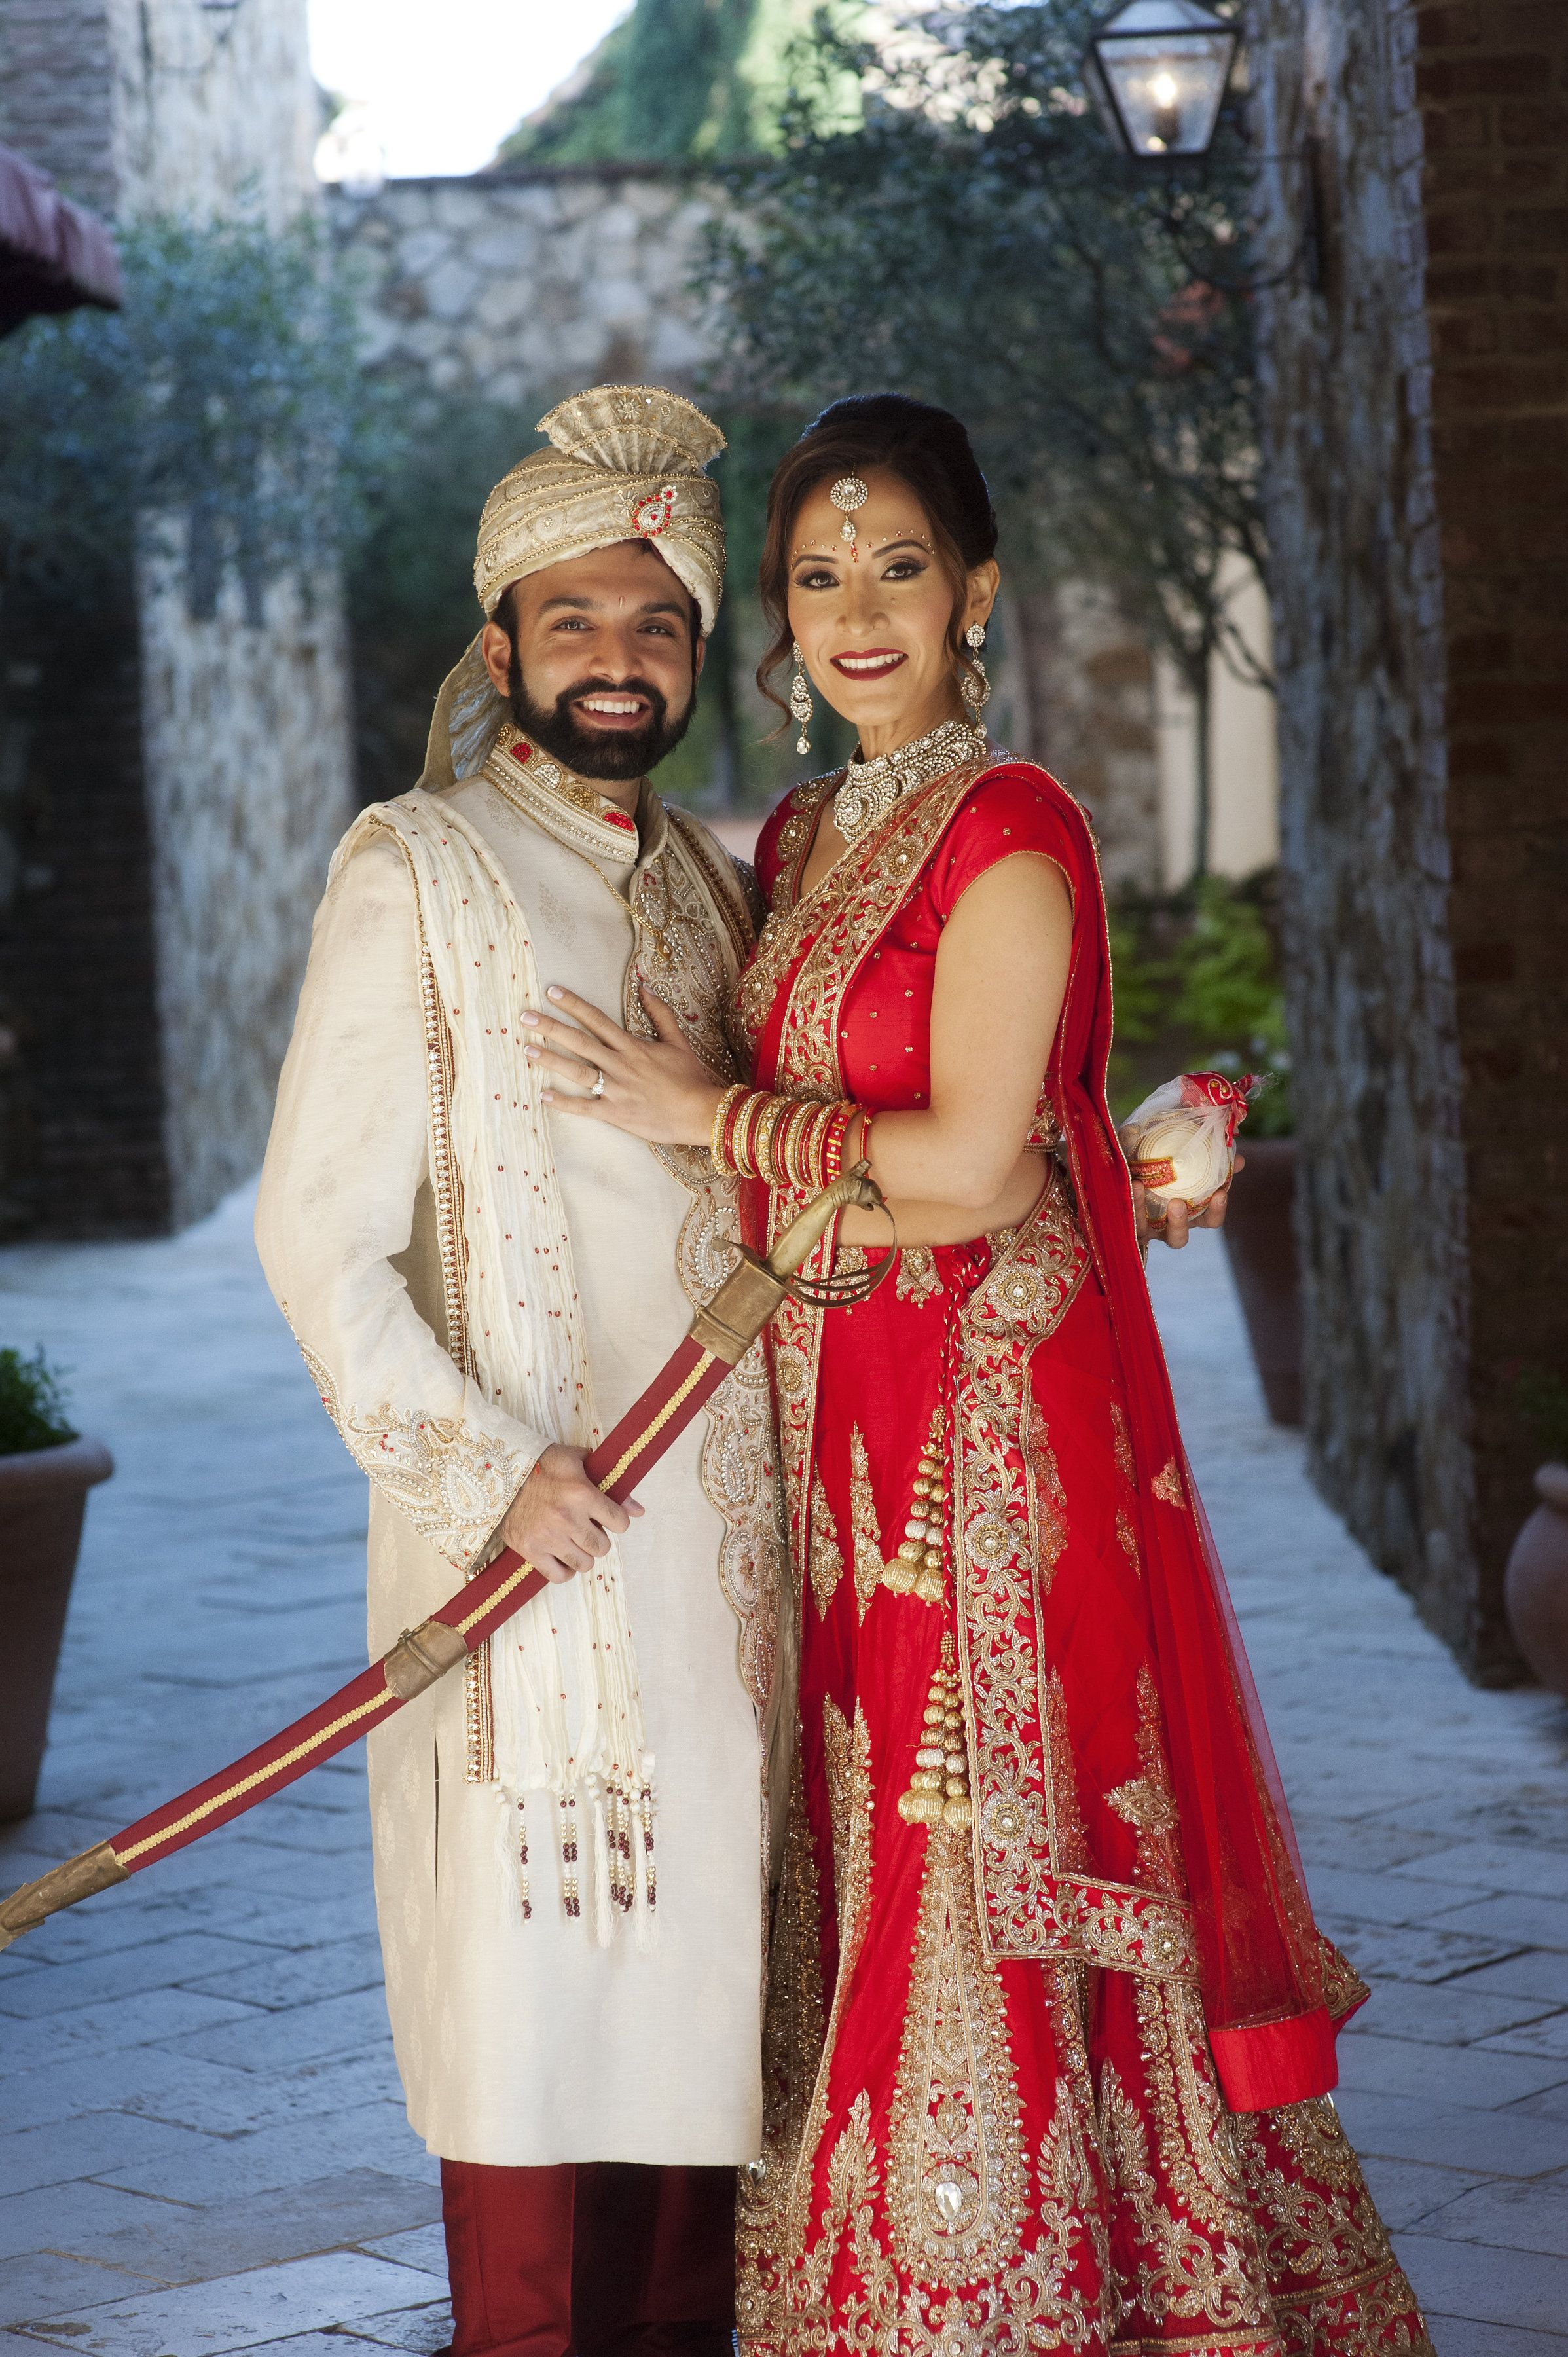 This Bride And Groom S Traditional Indian Wedding Attire Left Us Speechless Bride Style Groom Style Traditional Indian Wedding [ 3600 x 2395 Pixel ]